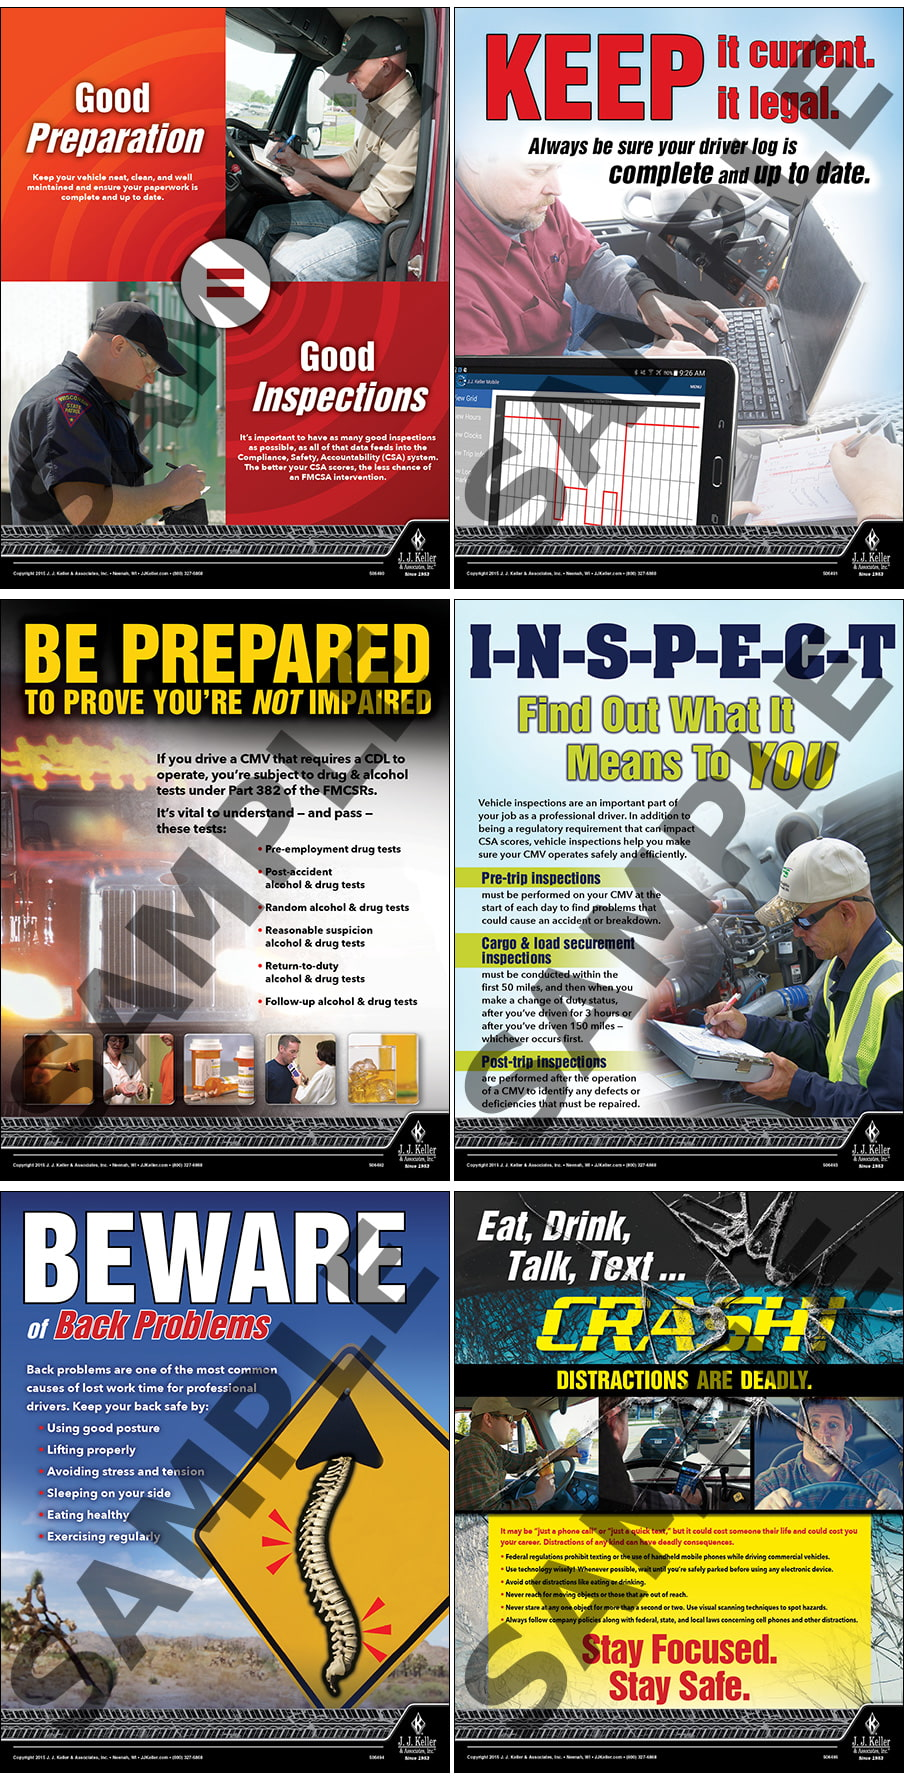 Transportation Safety Poster Set - Laminated (011483)